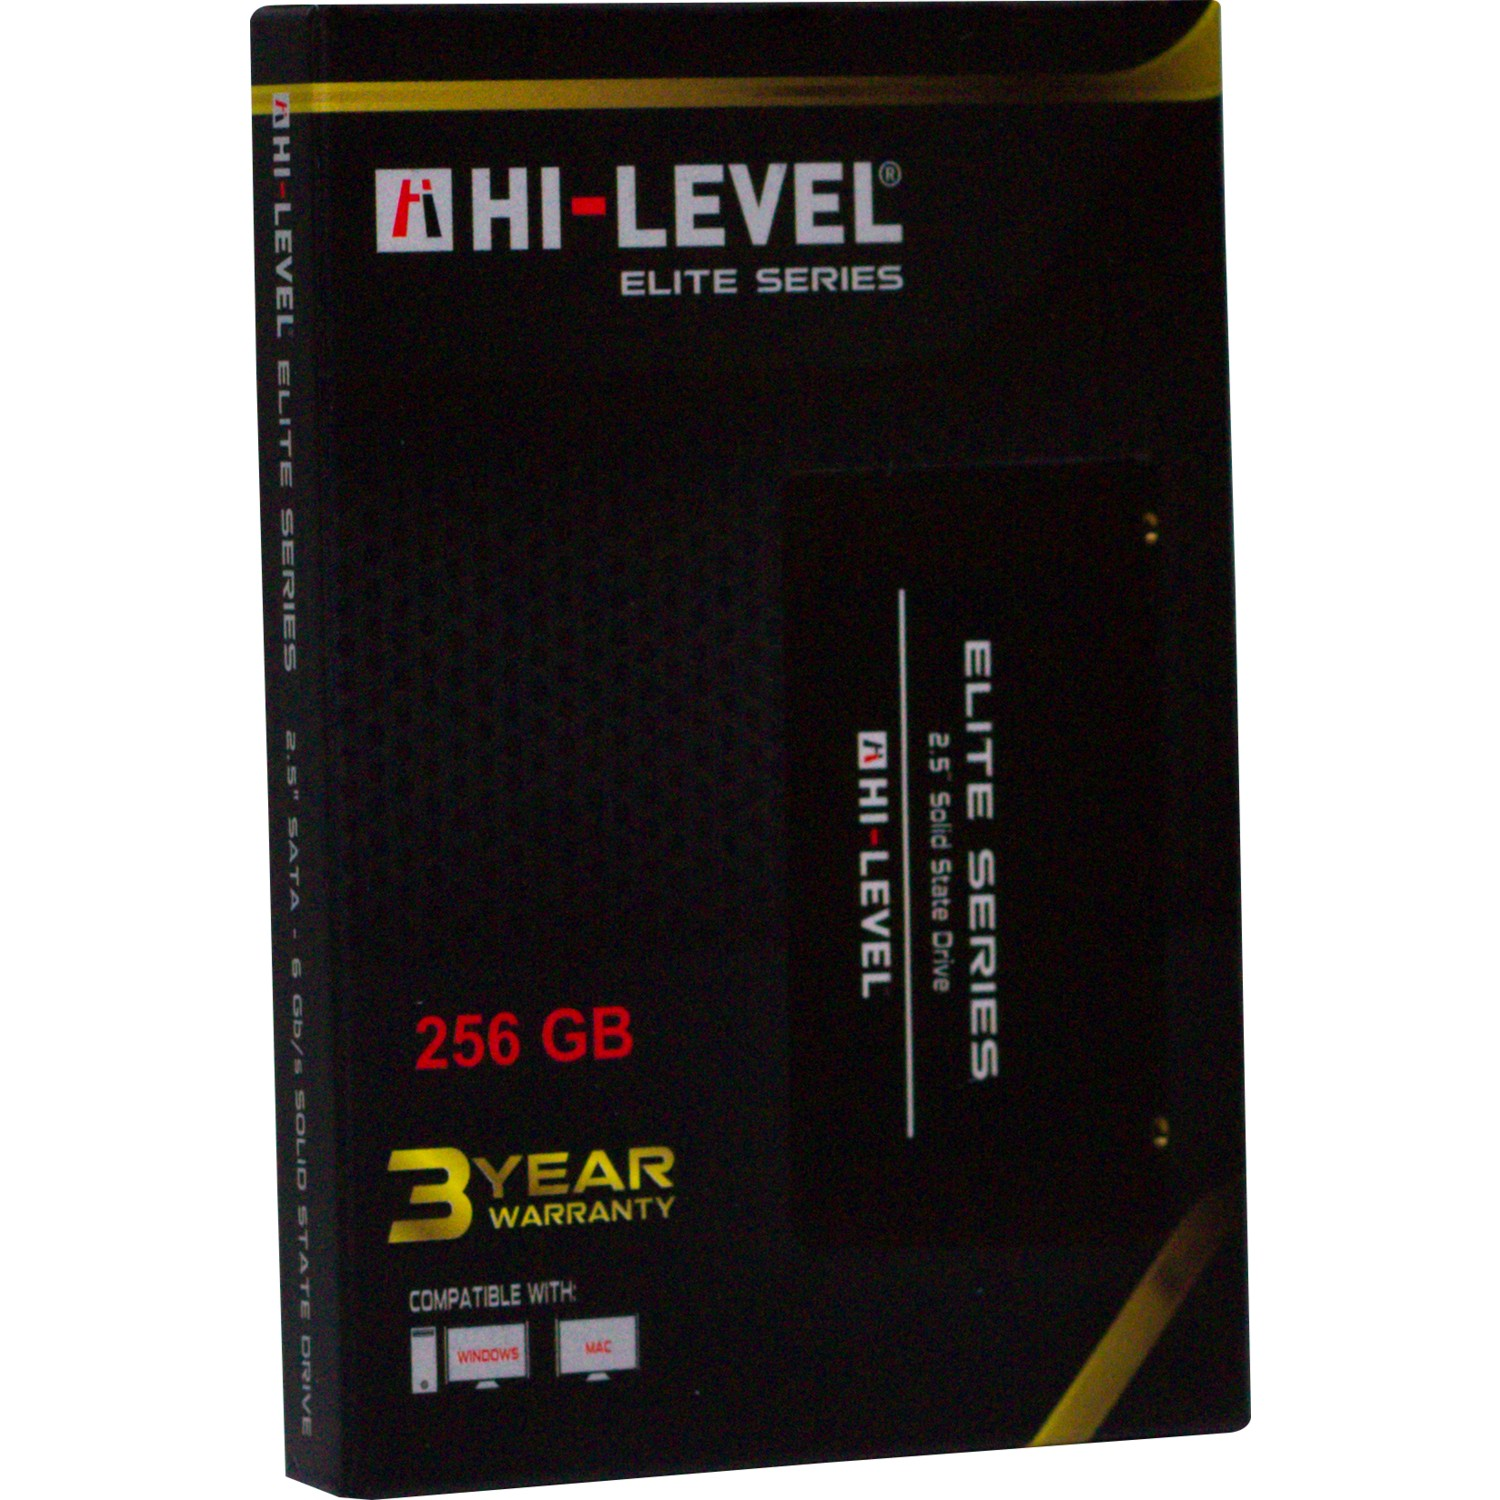 "HI-LEVEL ELITE SERIES 256GB 560/540MB/s 2.5"" SATA 3.0 SSD HLV-SSD30ELT/256G"